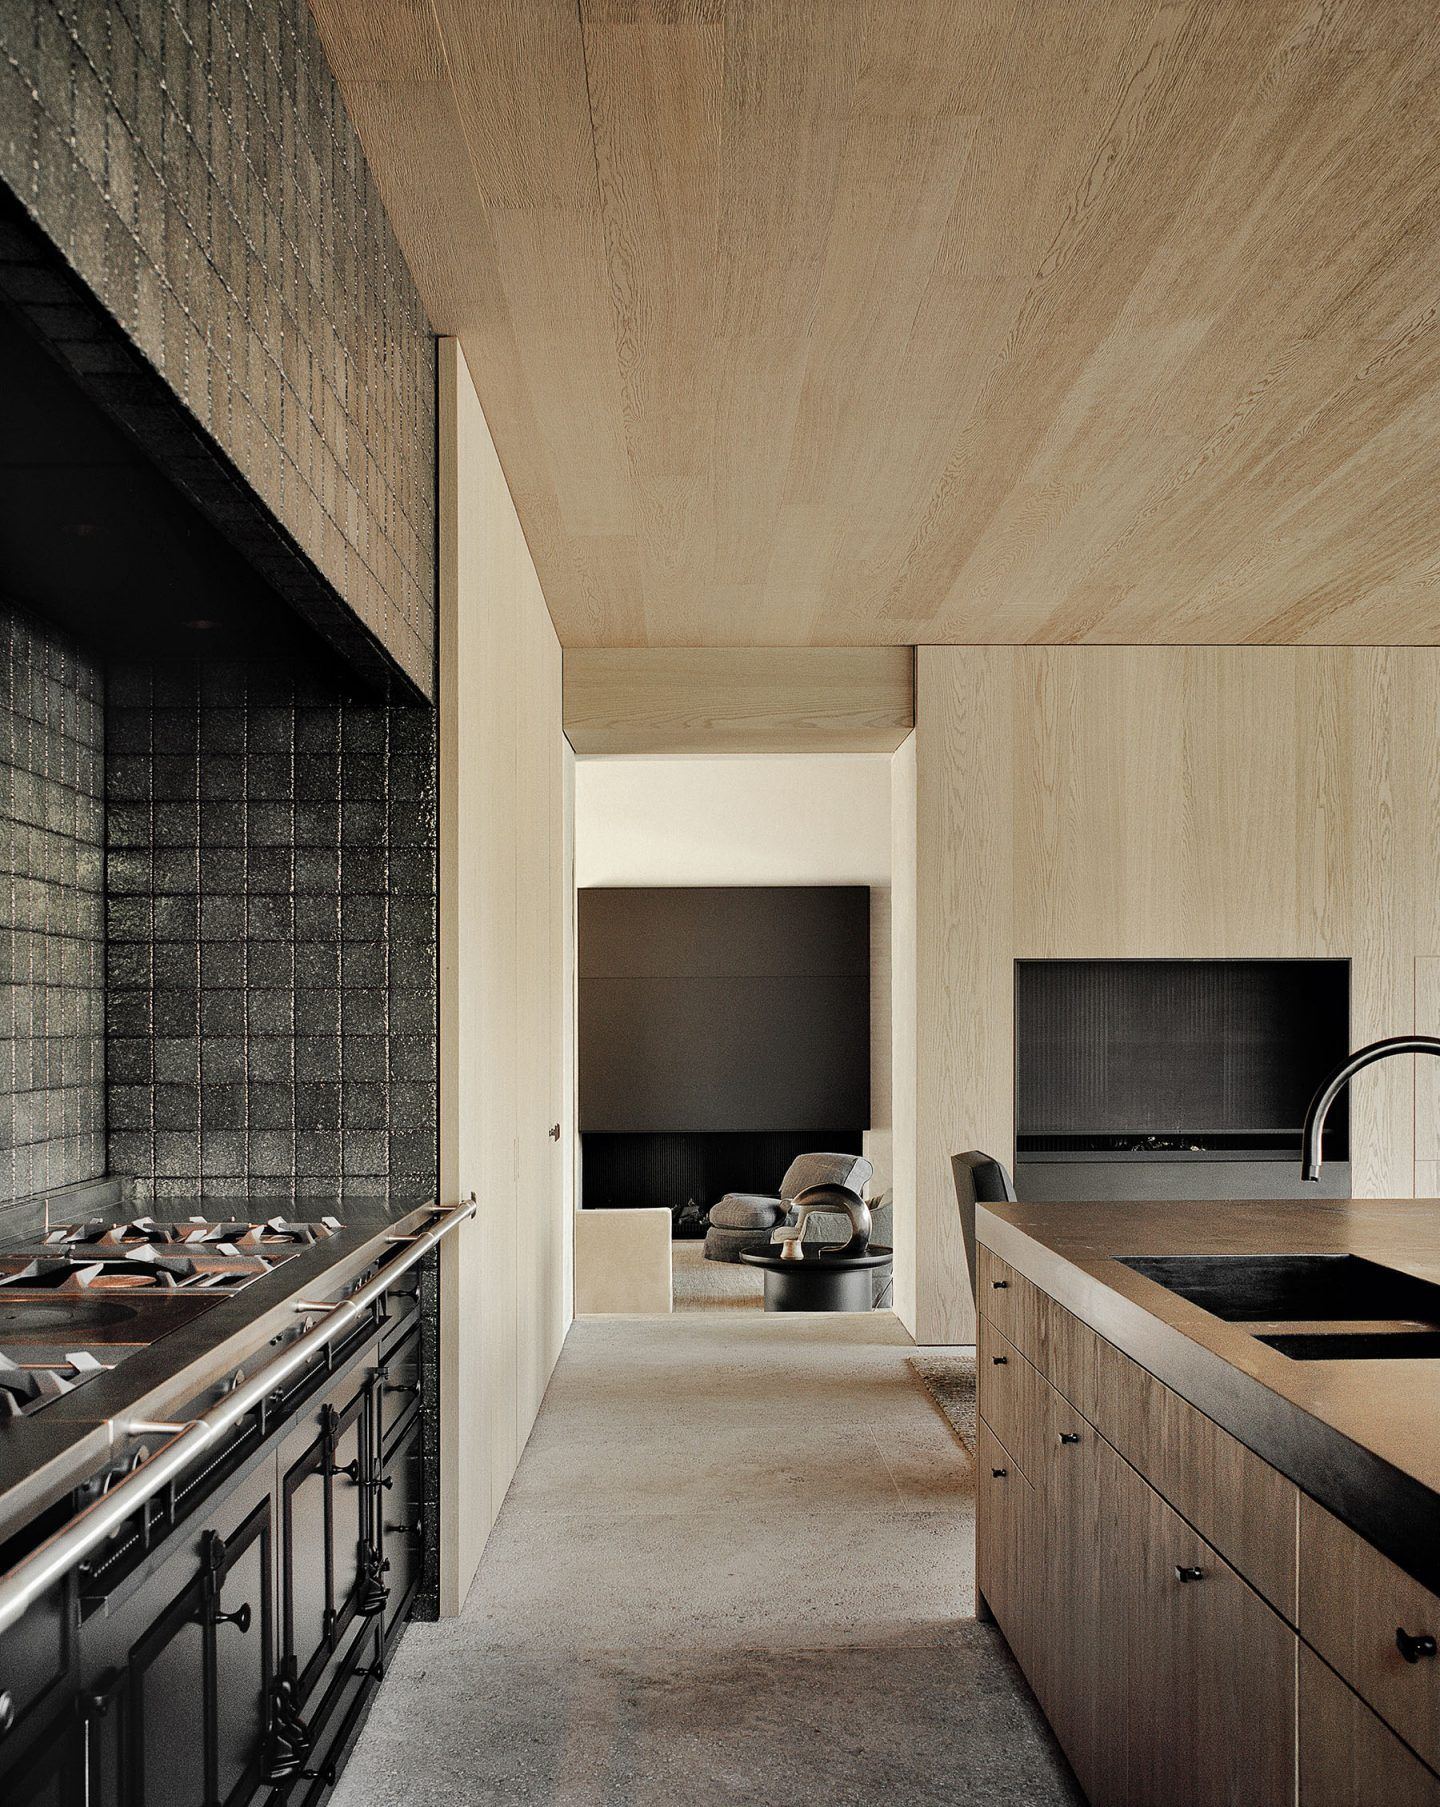 IGNANT-Architecture-Vincent-Van-Duysen-VO-Residence-06